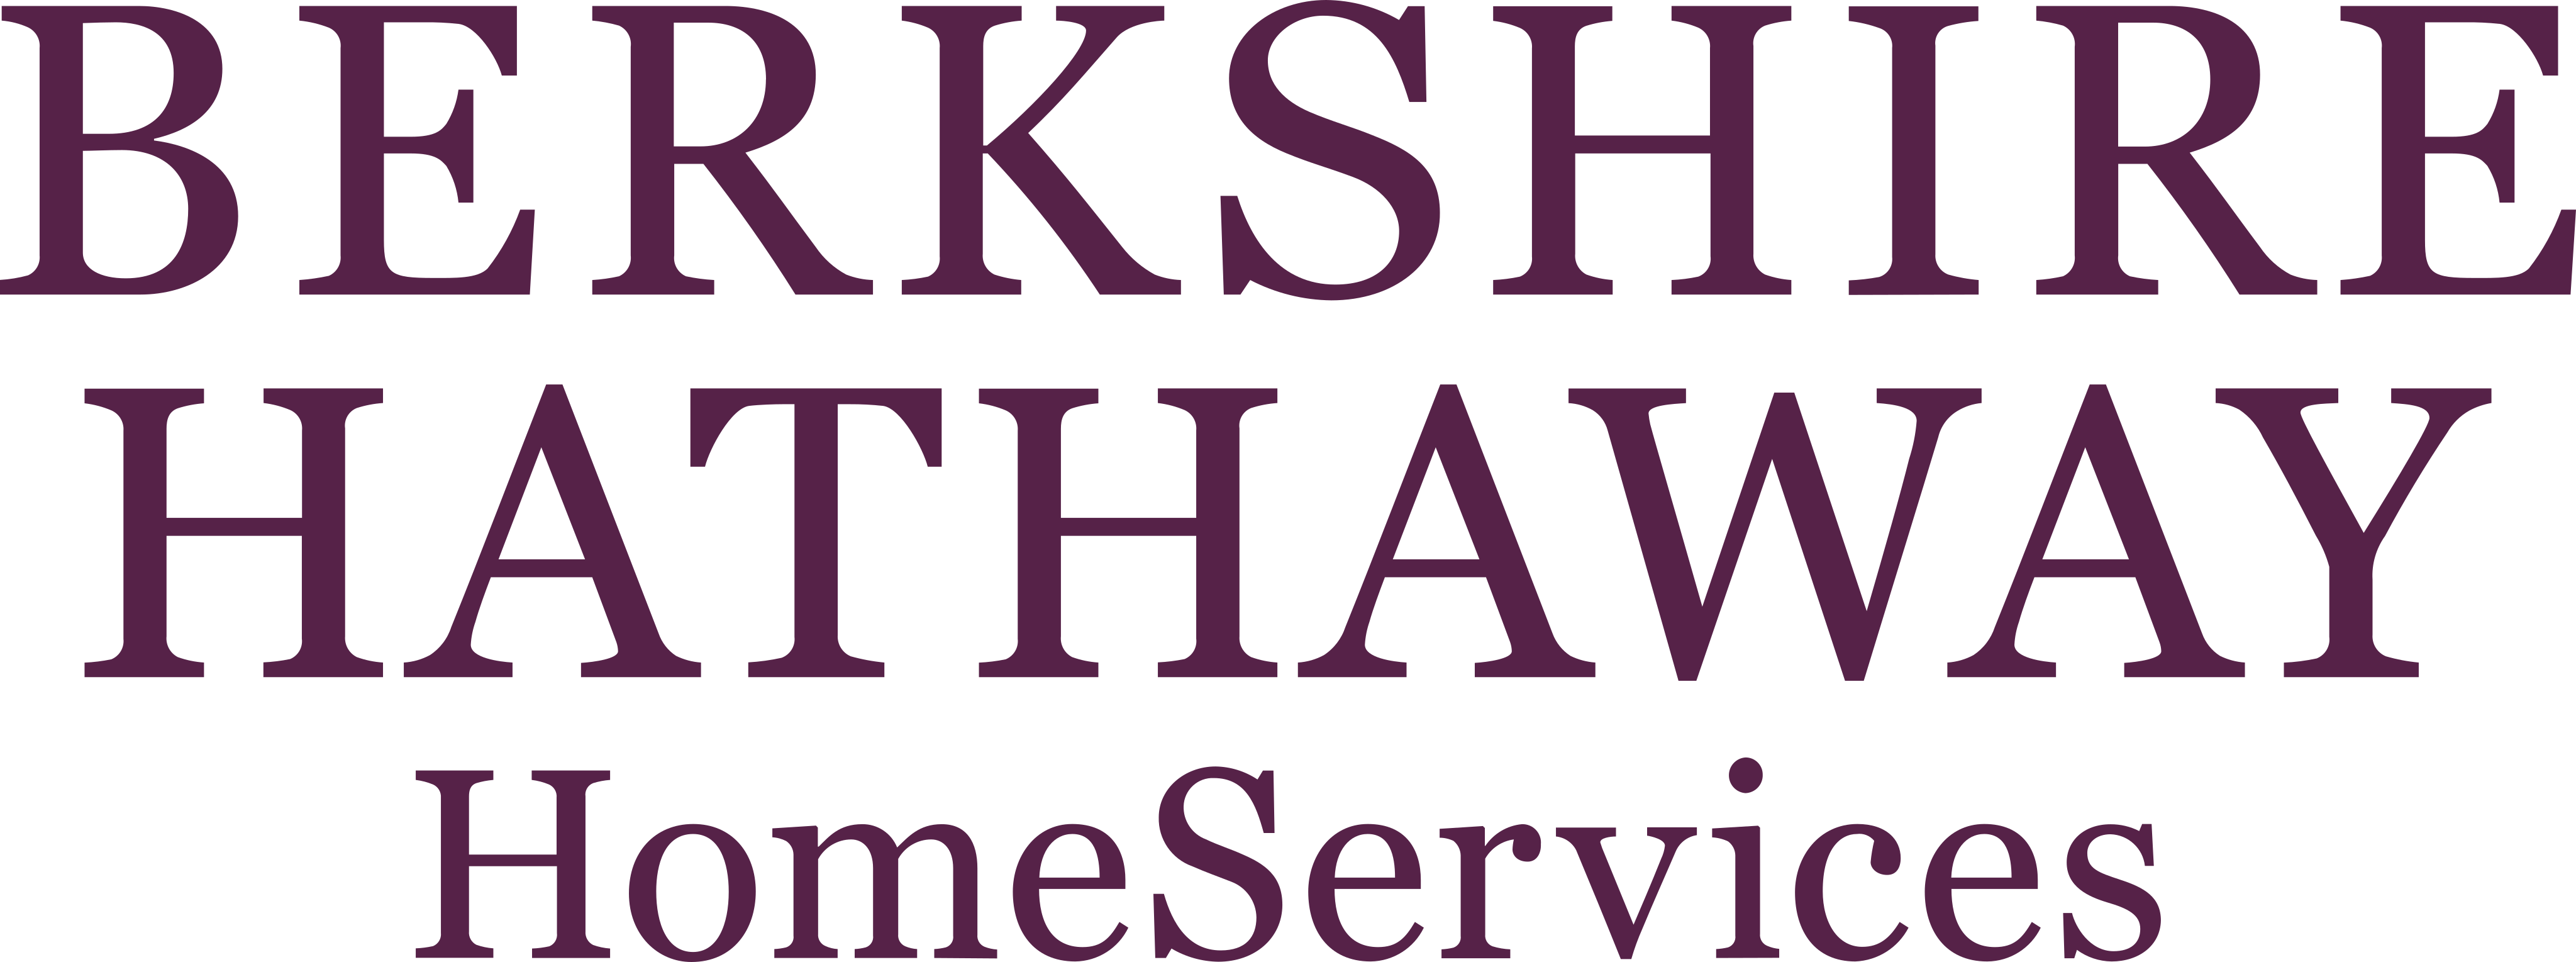 berkshire hathaway home services logo 2 - Berkshire Hathaway HomeServices Logo